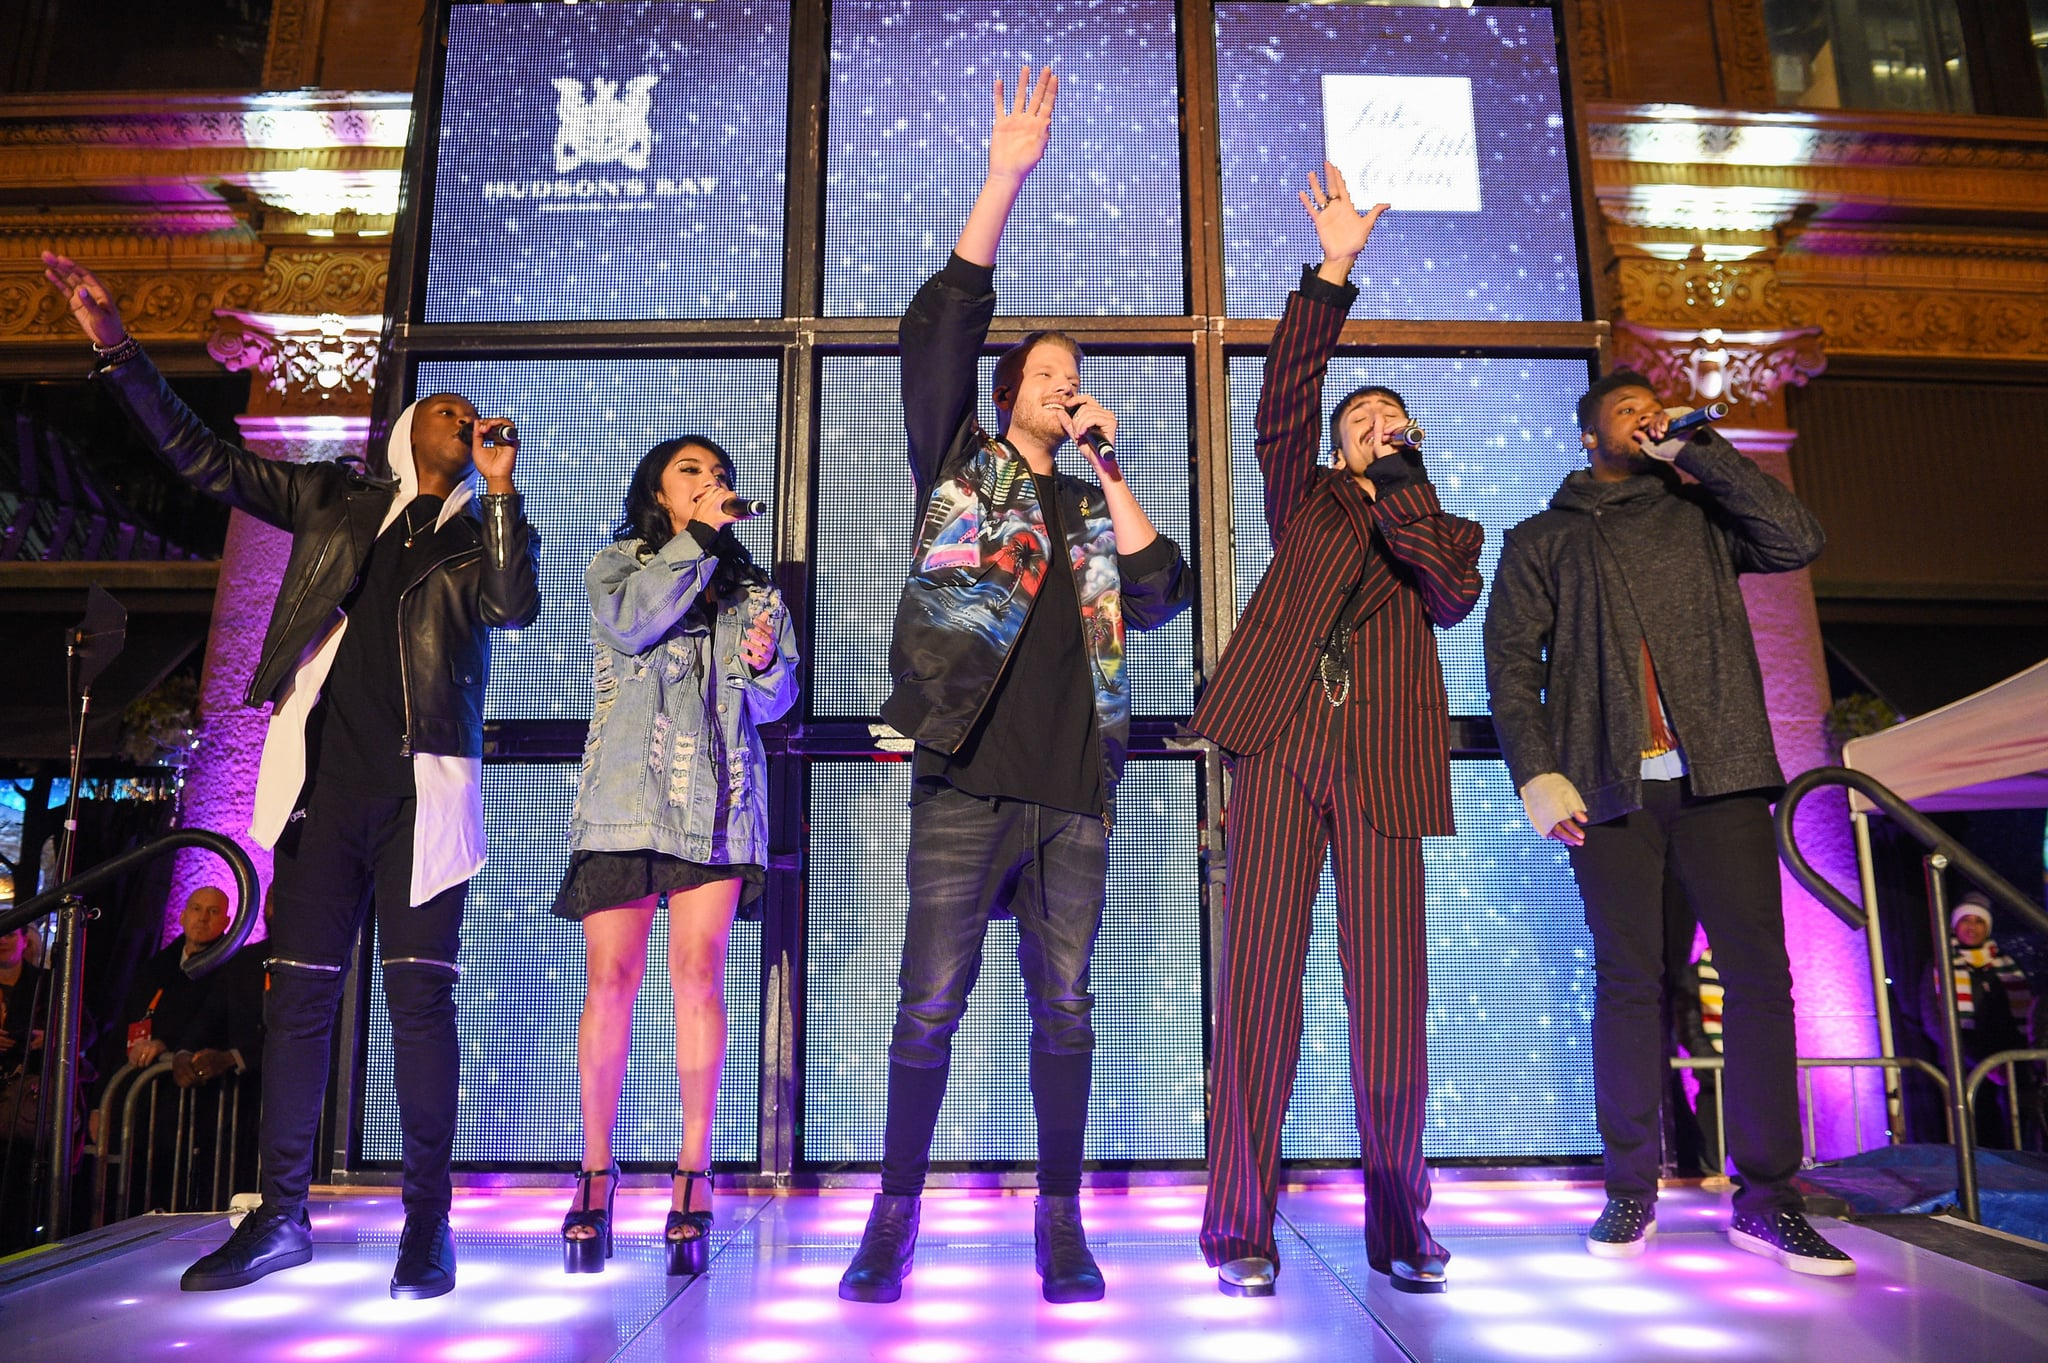 TORONTO, ON - NOVEMBER 02:  L-R Matt Sallee, Kirstin Maldonado, Scott Hoying, Mitch Grassi and Kevin Olusola of Pentatonix perform at Hudson's Bay And Saks Fifth Avenue Kick Off The Holidays With Pentatonix at Hudson's Bay on November 2, 2017 in Toronto, Canada.  (Photo by GP Images/WireImage)